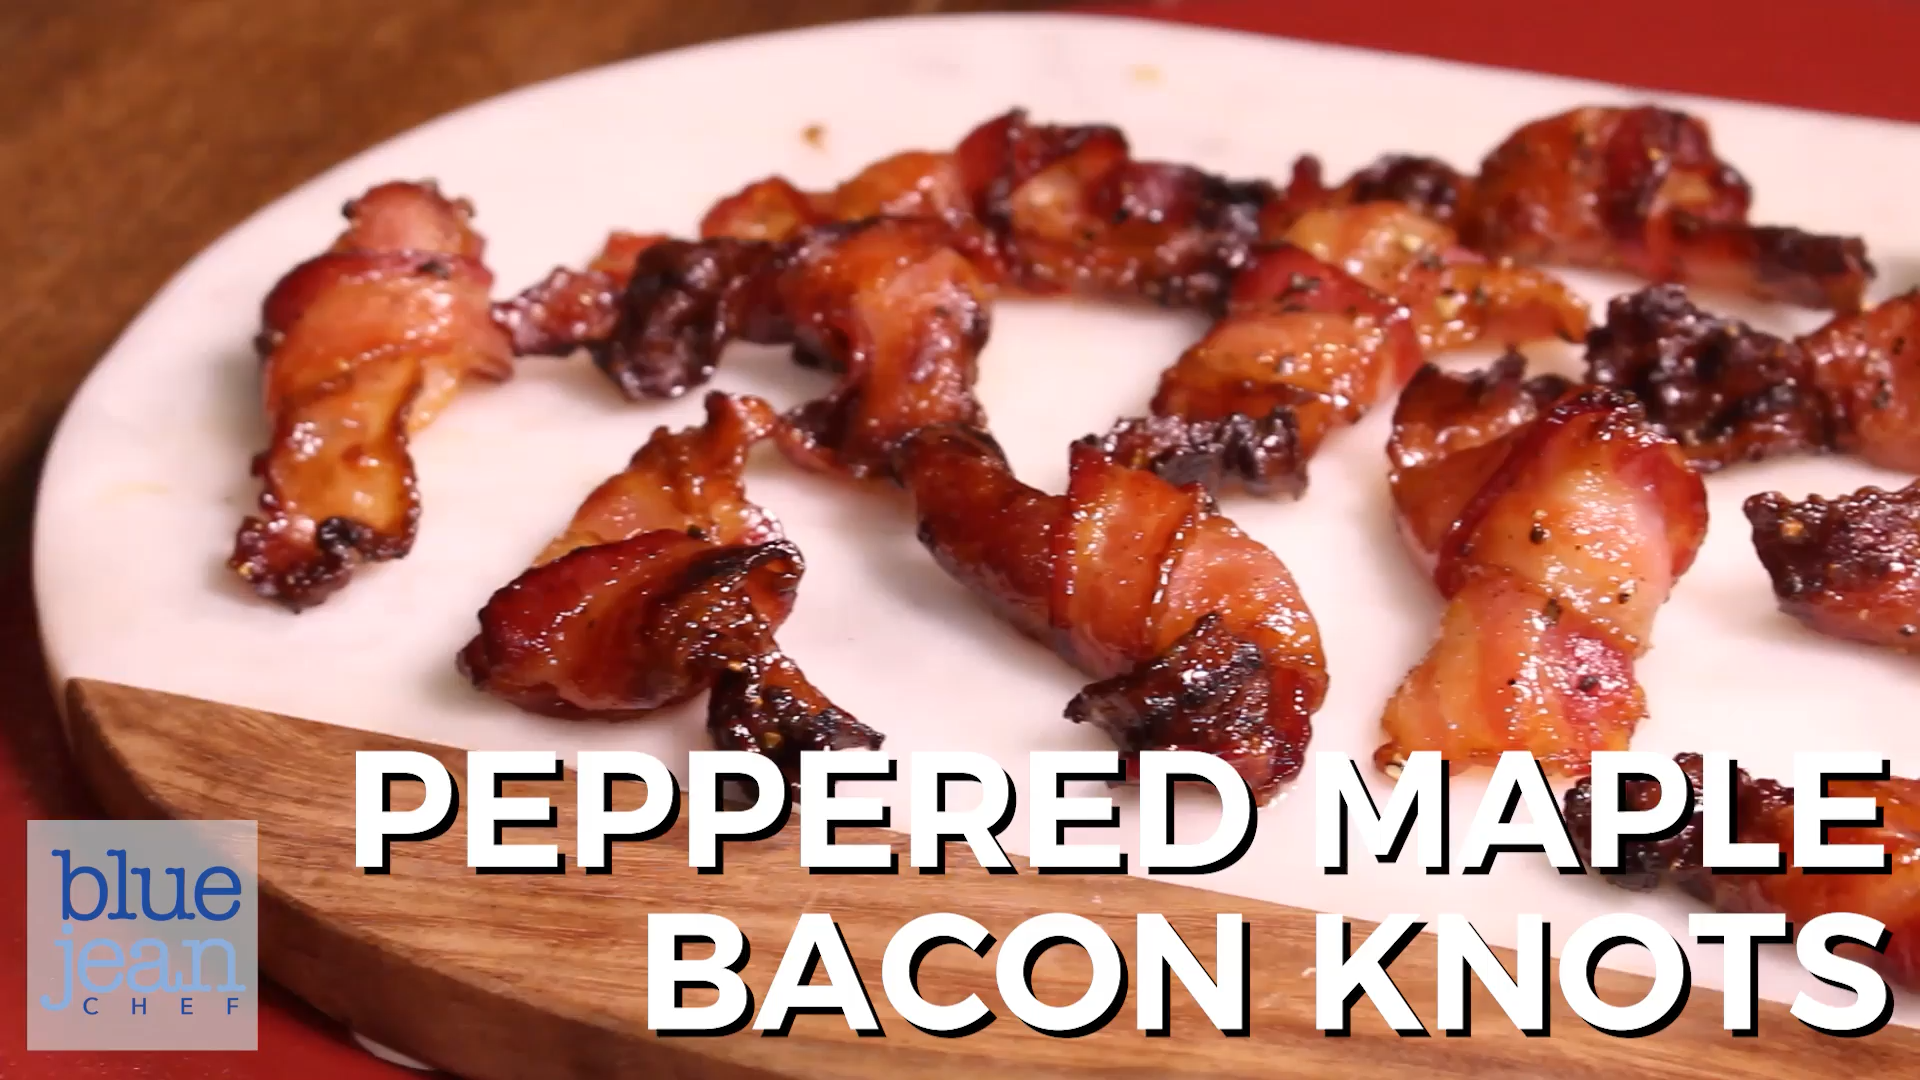 Peppered Maple Bacon Knots - Bacon knots are hands down the prettiest way to present bacon. Just a